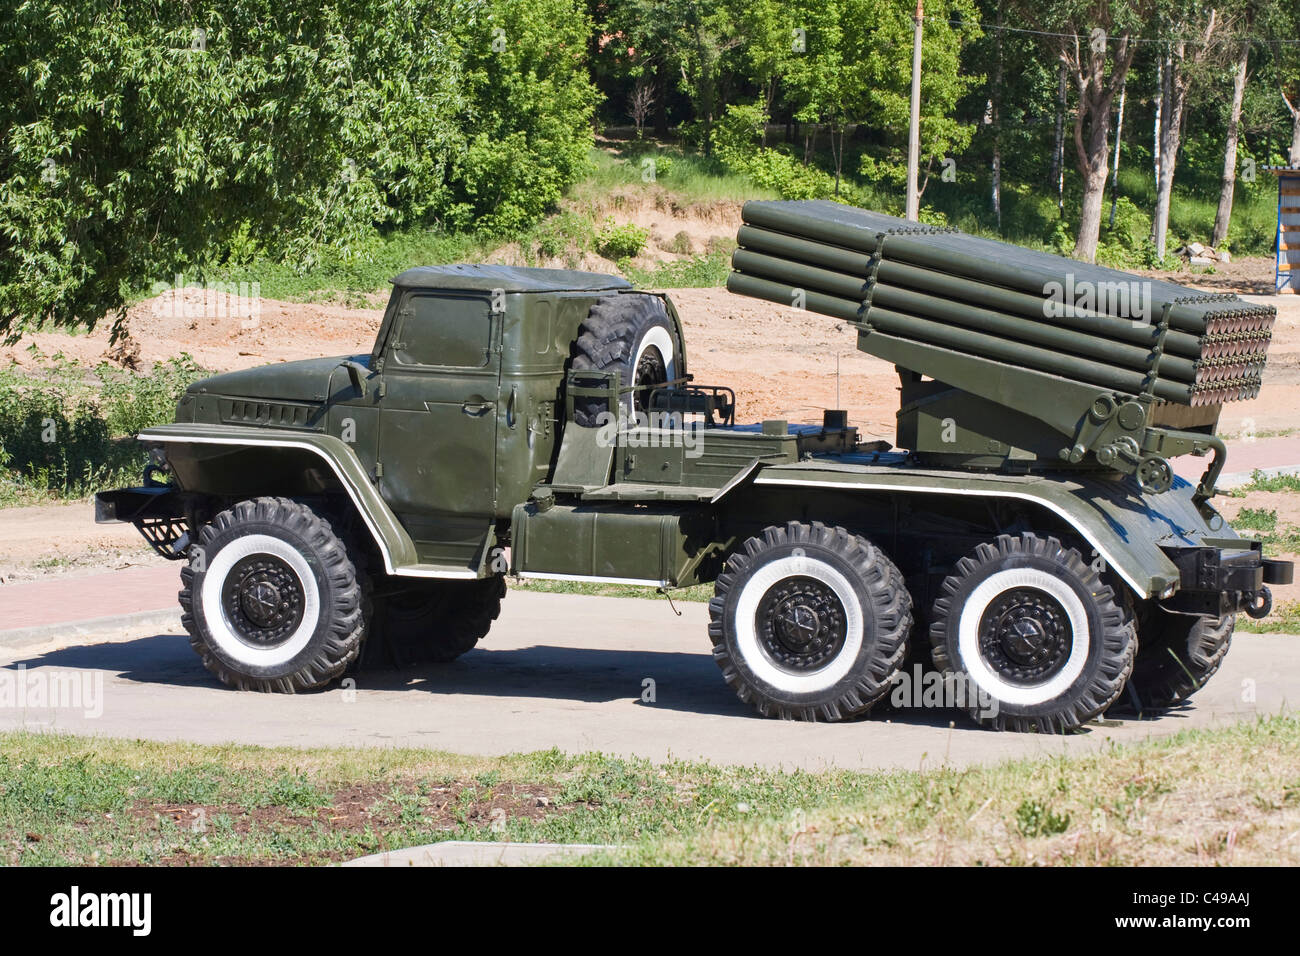 Grad multiple-launch rocket system, museum of military equipment - Stock Image